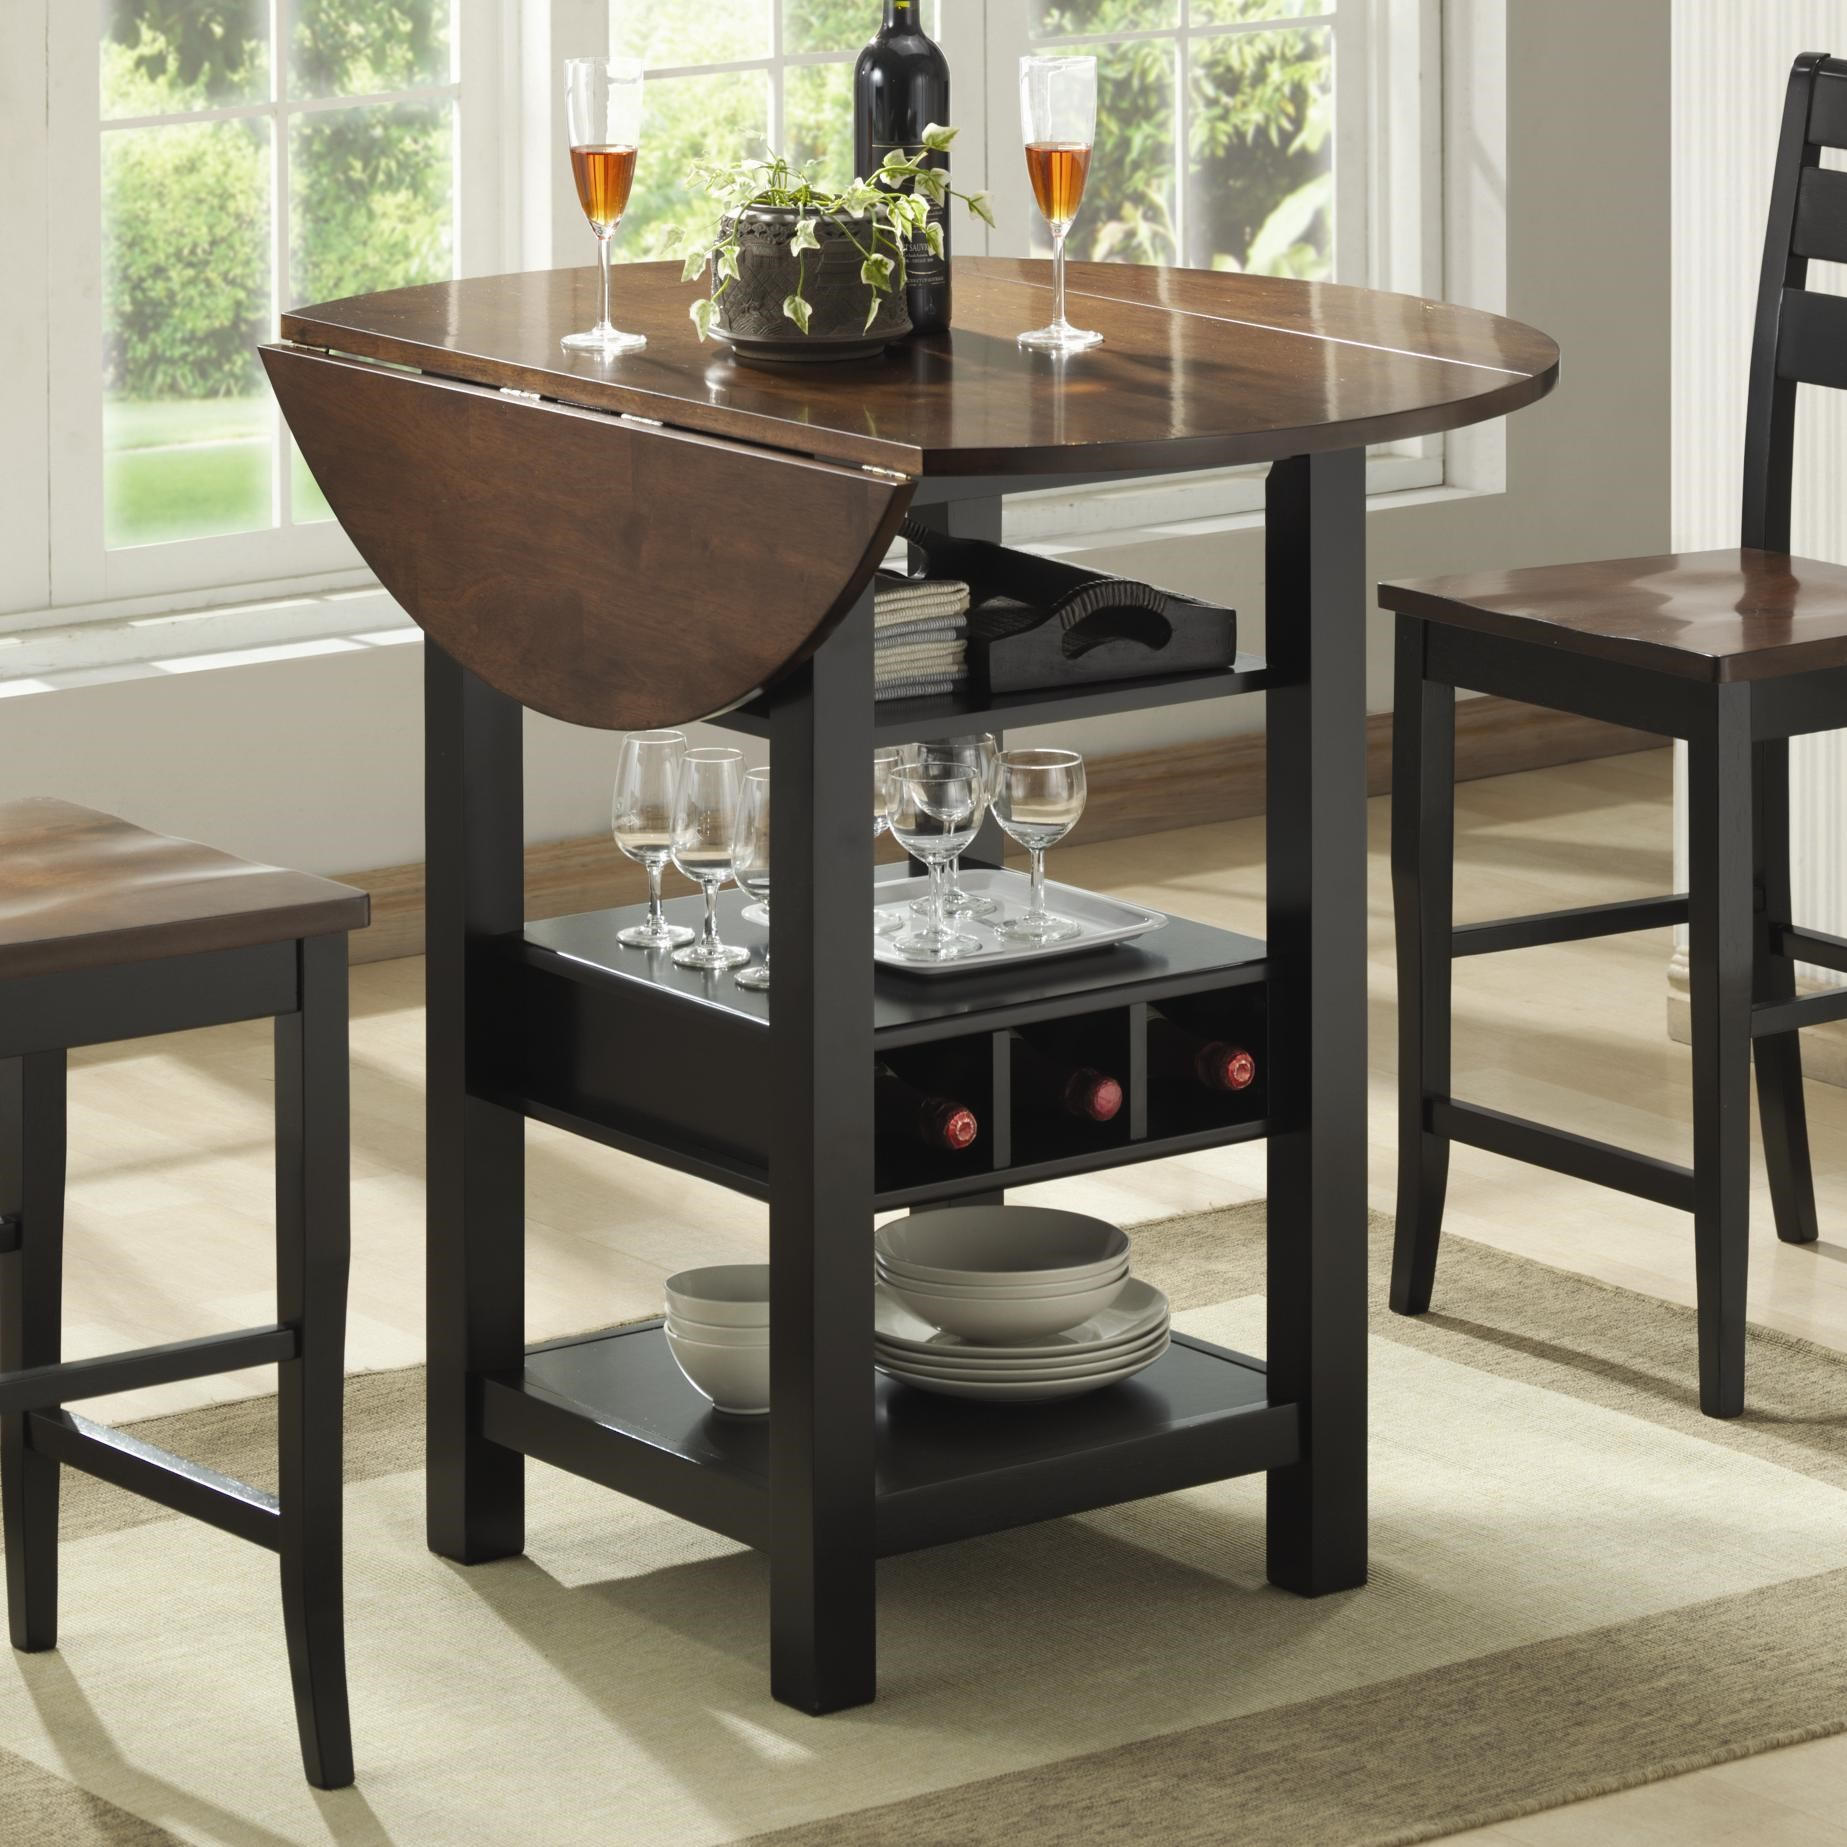 Superieur Bernards Ridgewood Drop Leaf Pub Table With Wine Rack